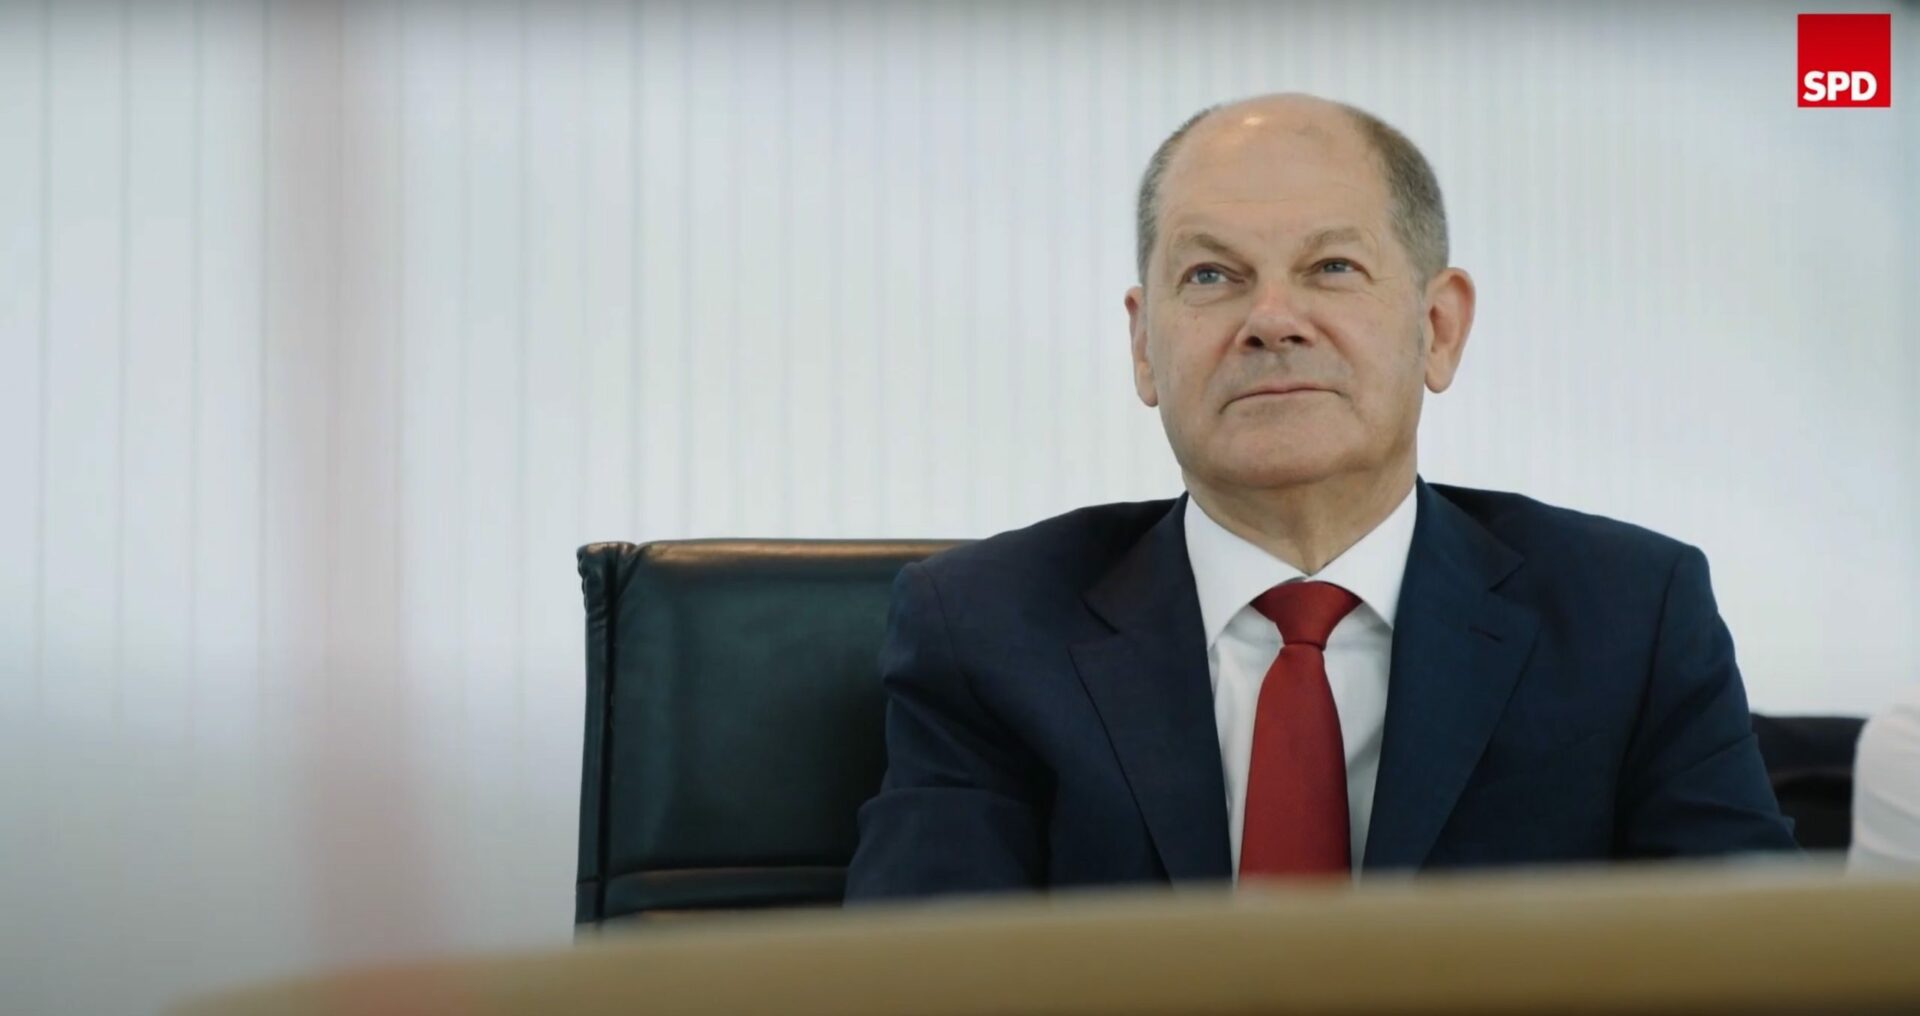 Social-Media-Videos für Olaf Scholz